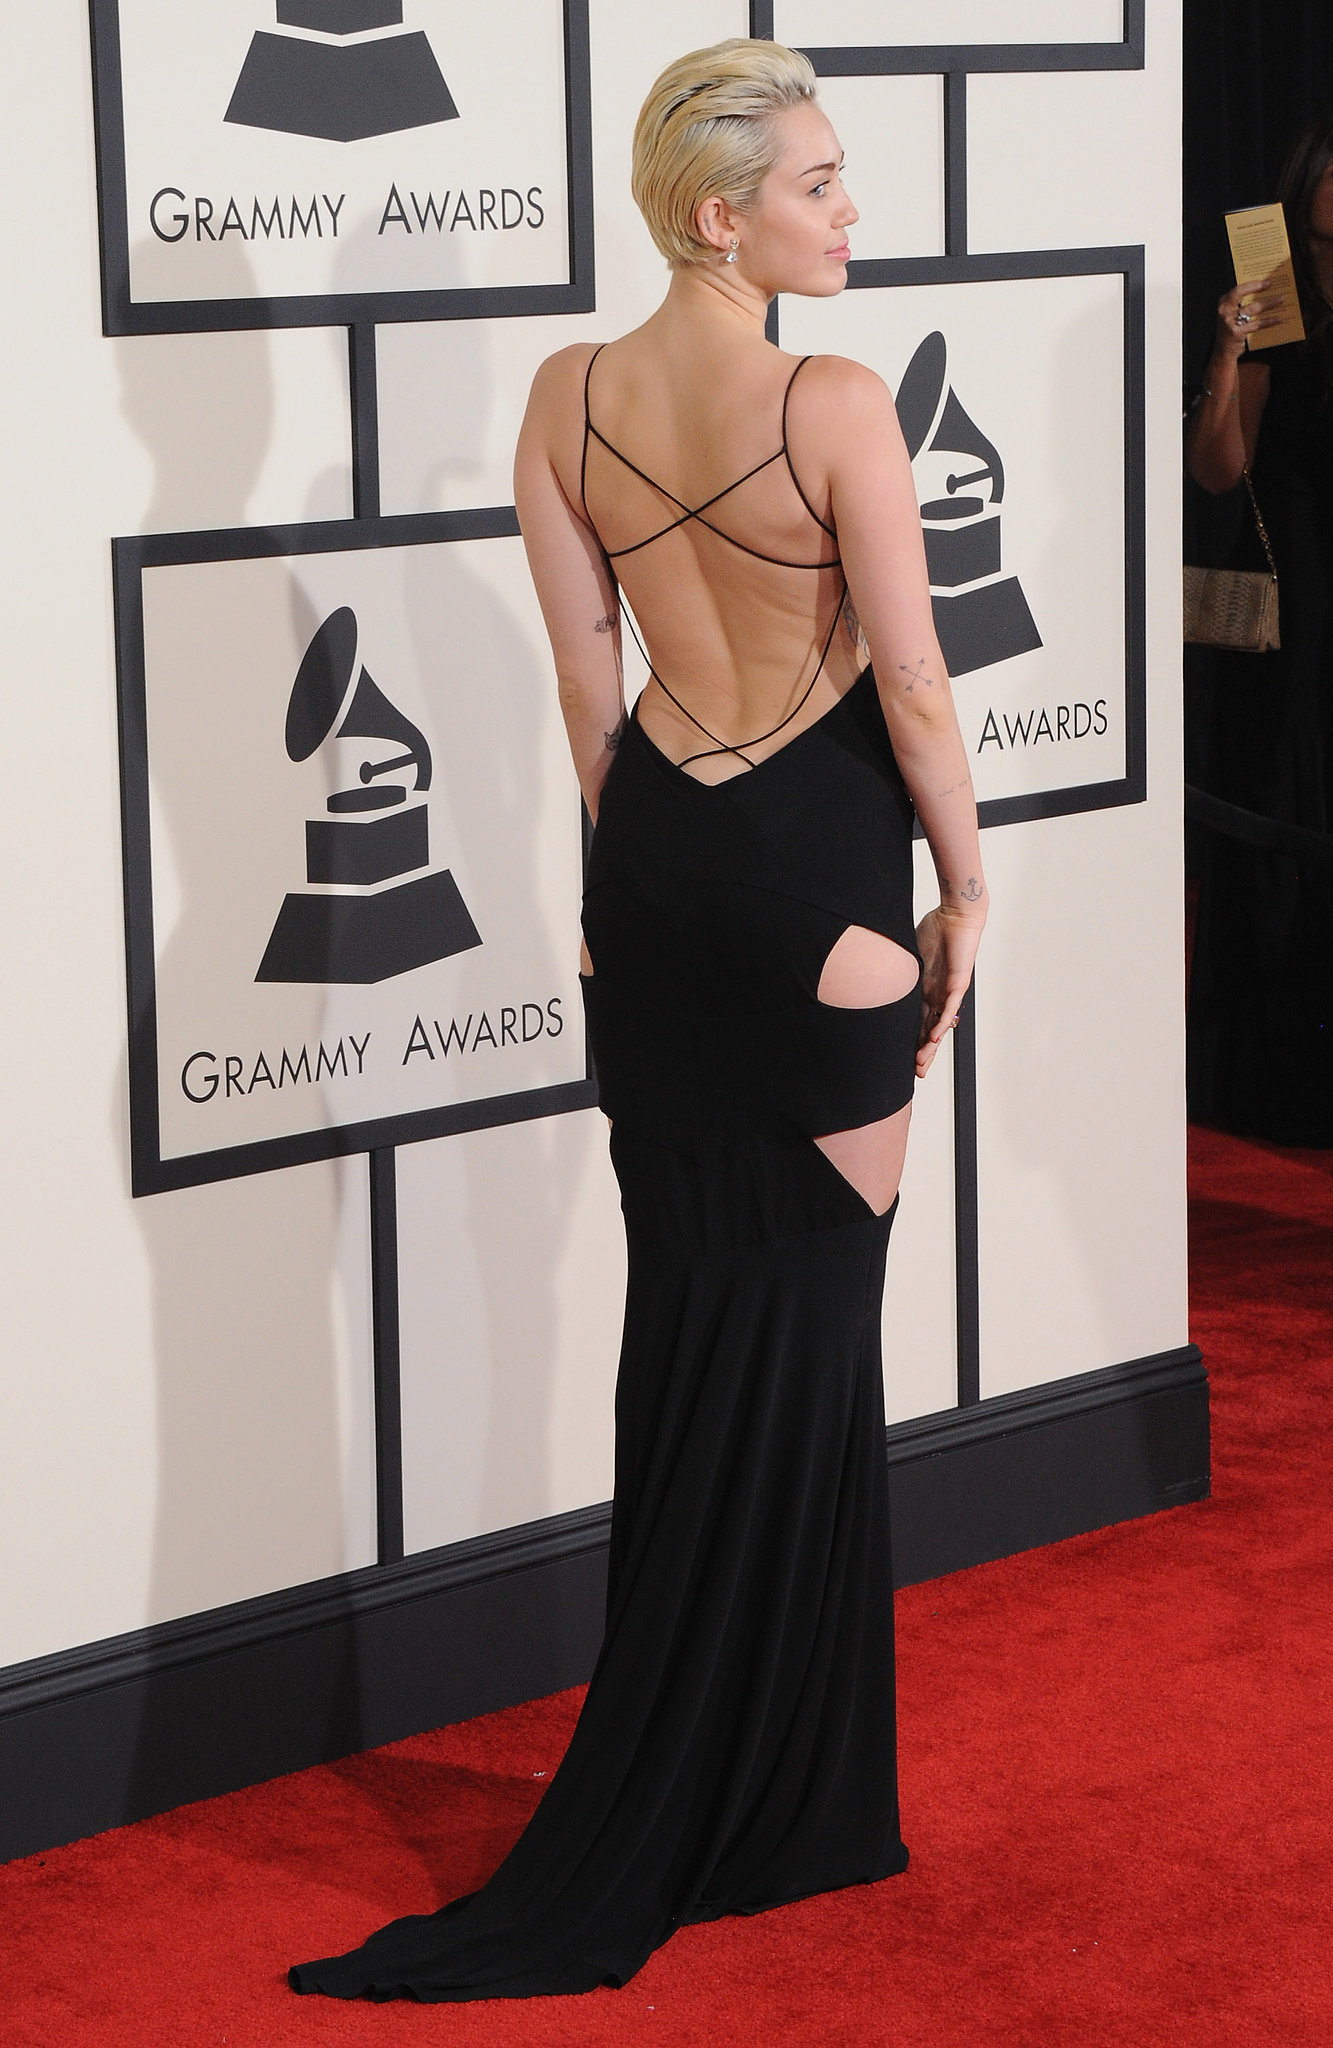 Sexiest Dresses At The Grammy Awards 2015 Popsugar Fashion